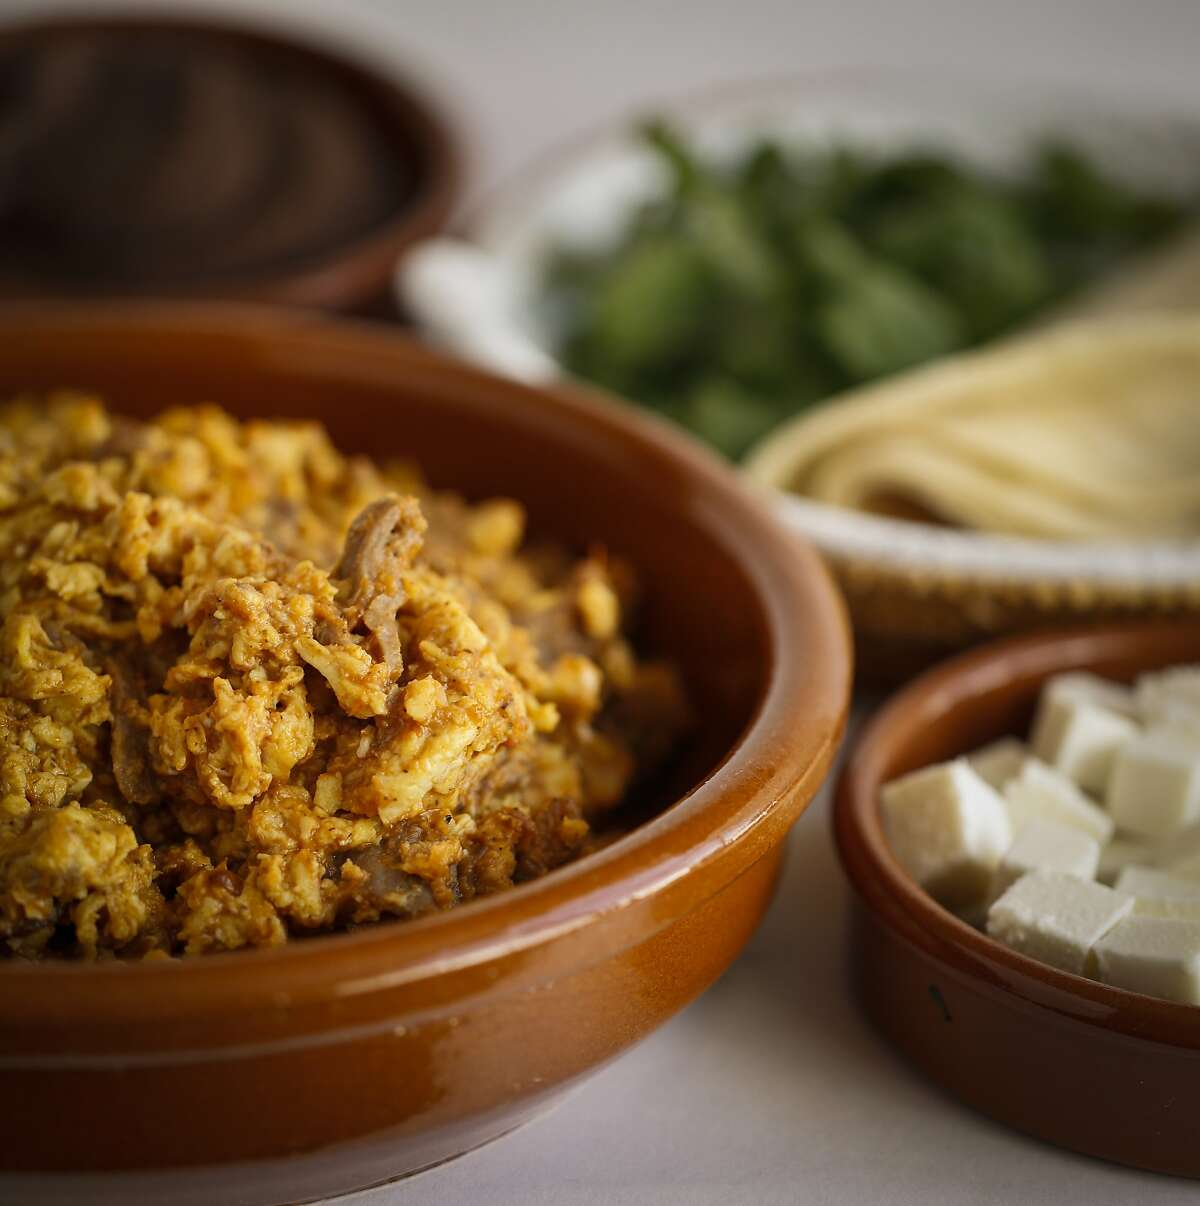 Aporreadillo (eggs scrambled with cecina (air-dried beef) from Gonzalo Rivera, Jr. of Copita is seen on Tuesday, Sept. 23, 2014 in San Francisco, Calif. The dish comes from the Michoacan region of Mexico.